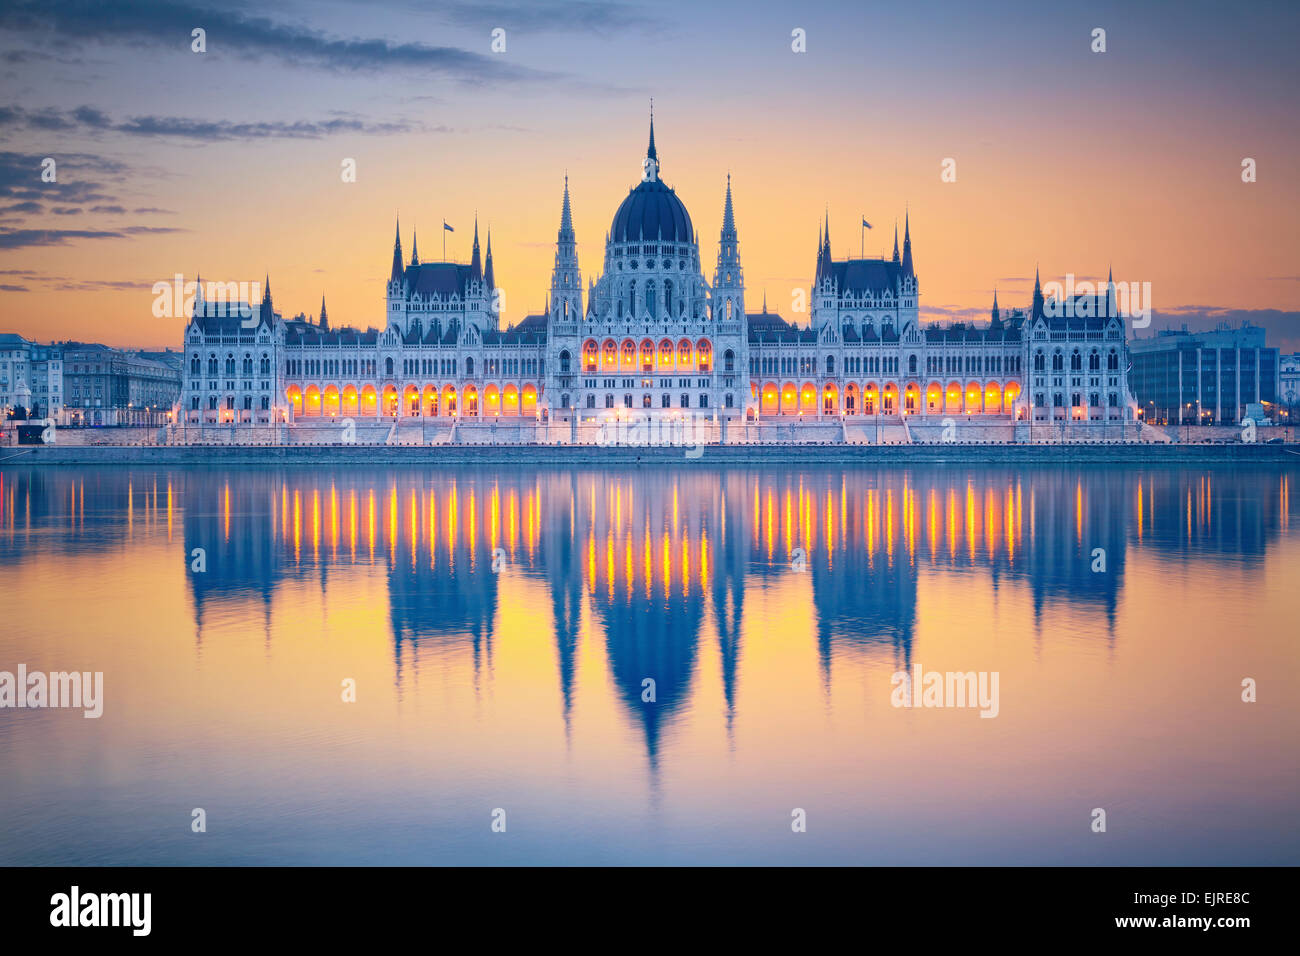 Budapest. Image of Hungarian parliament in Budapest during sunrise. - Stock Image